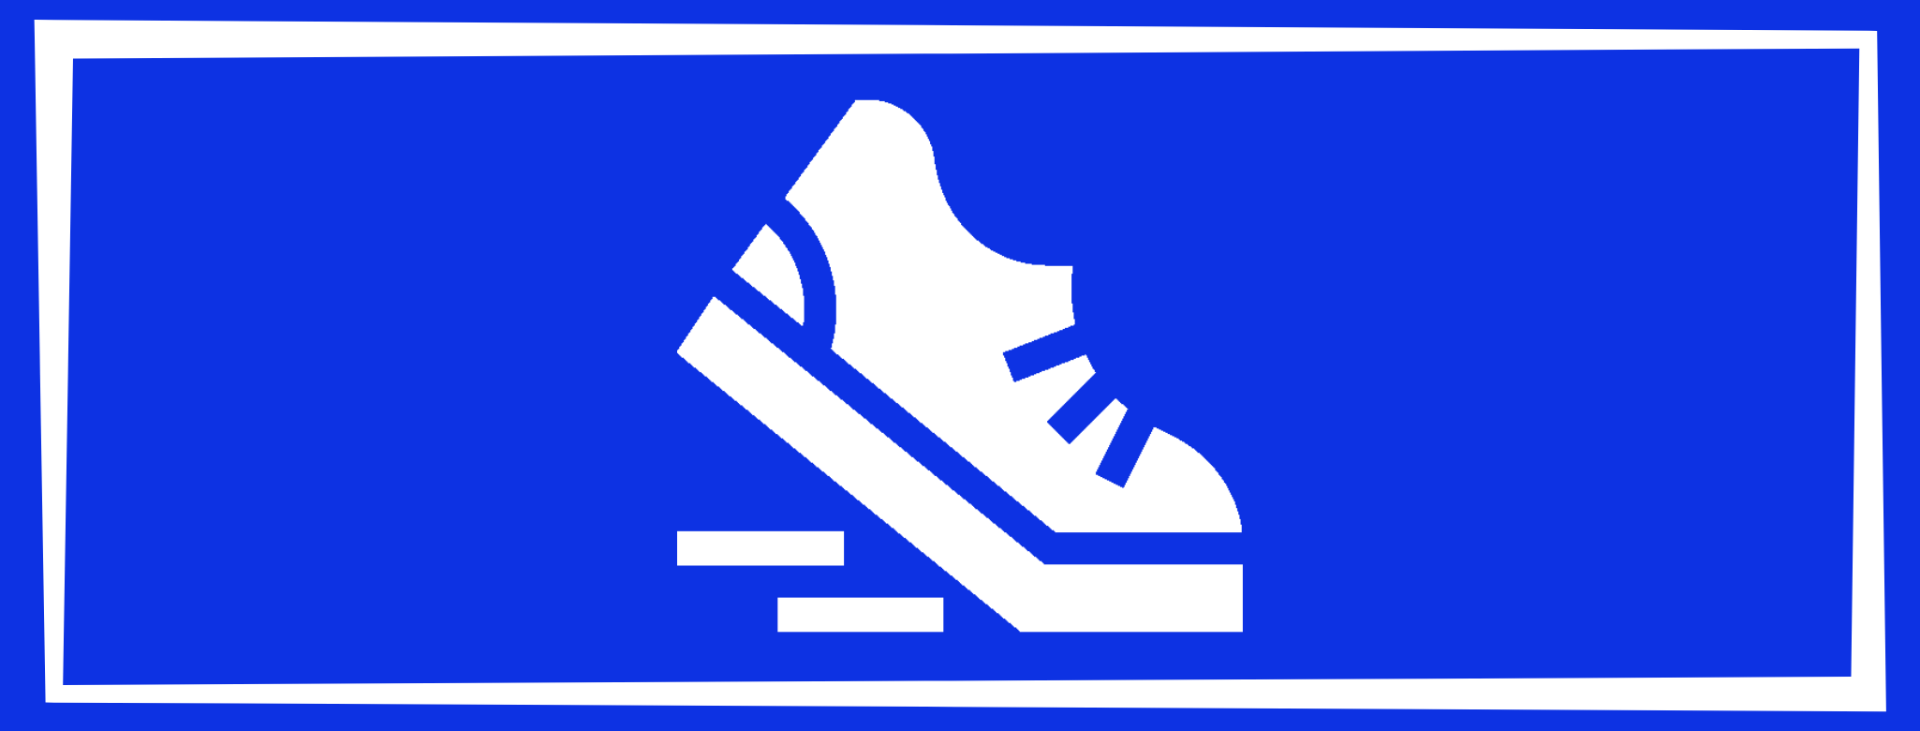 physical wellness solid square with a sneaker walking down steps